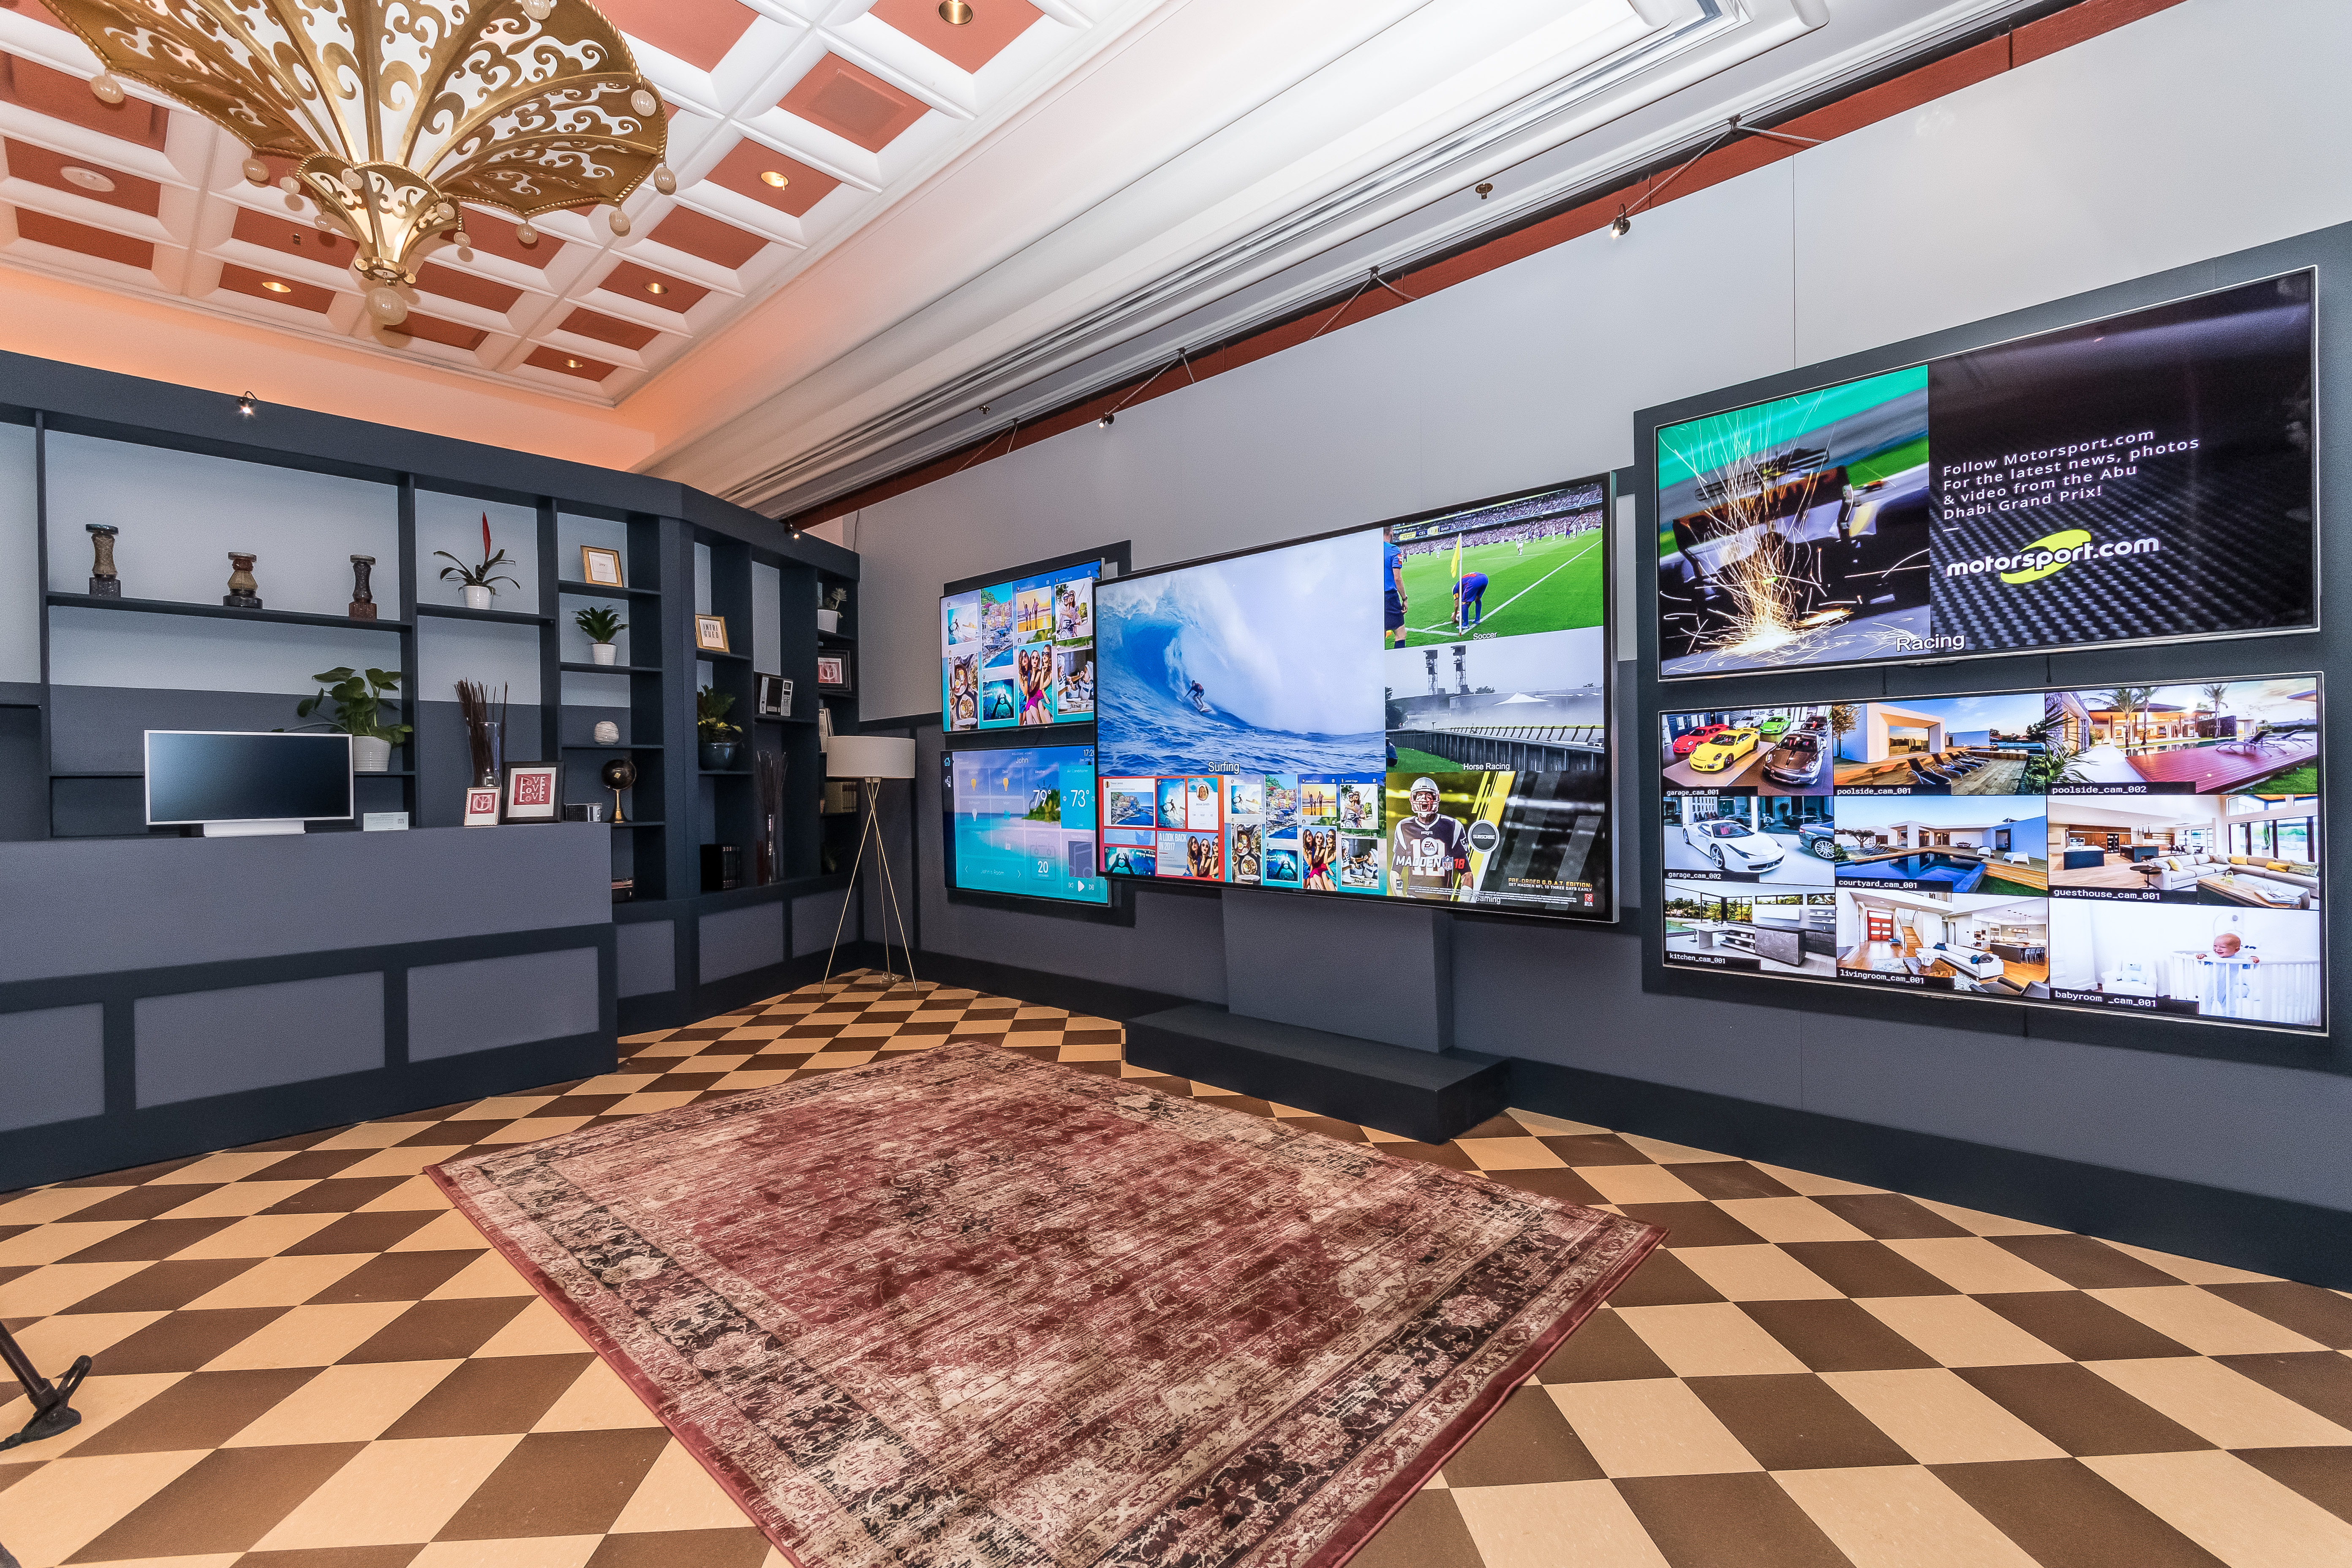 CES 2018 - SHARP Showroom at the Wynn Hotel